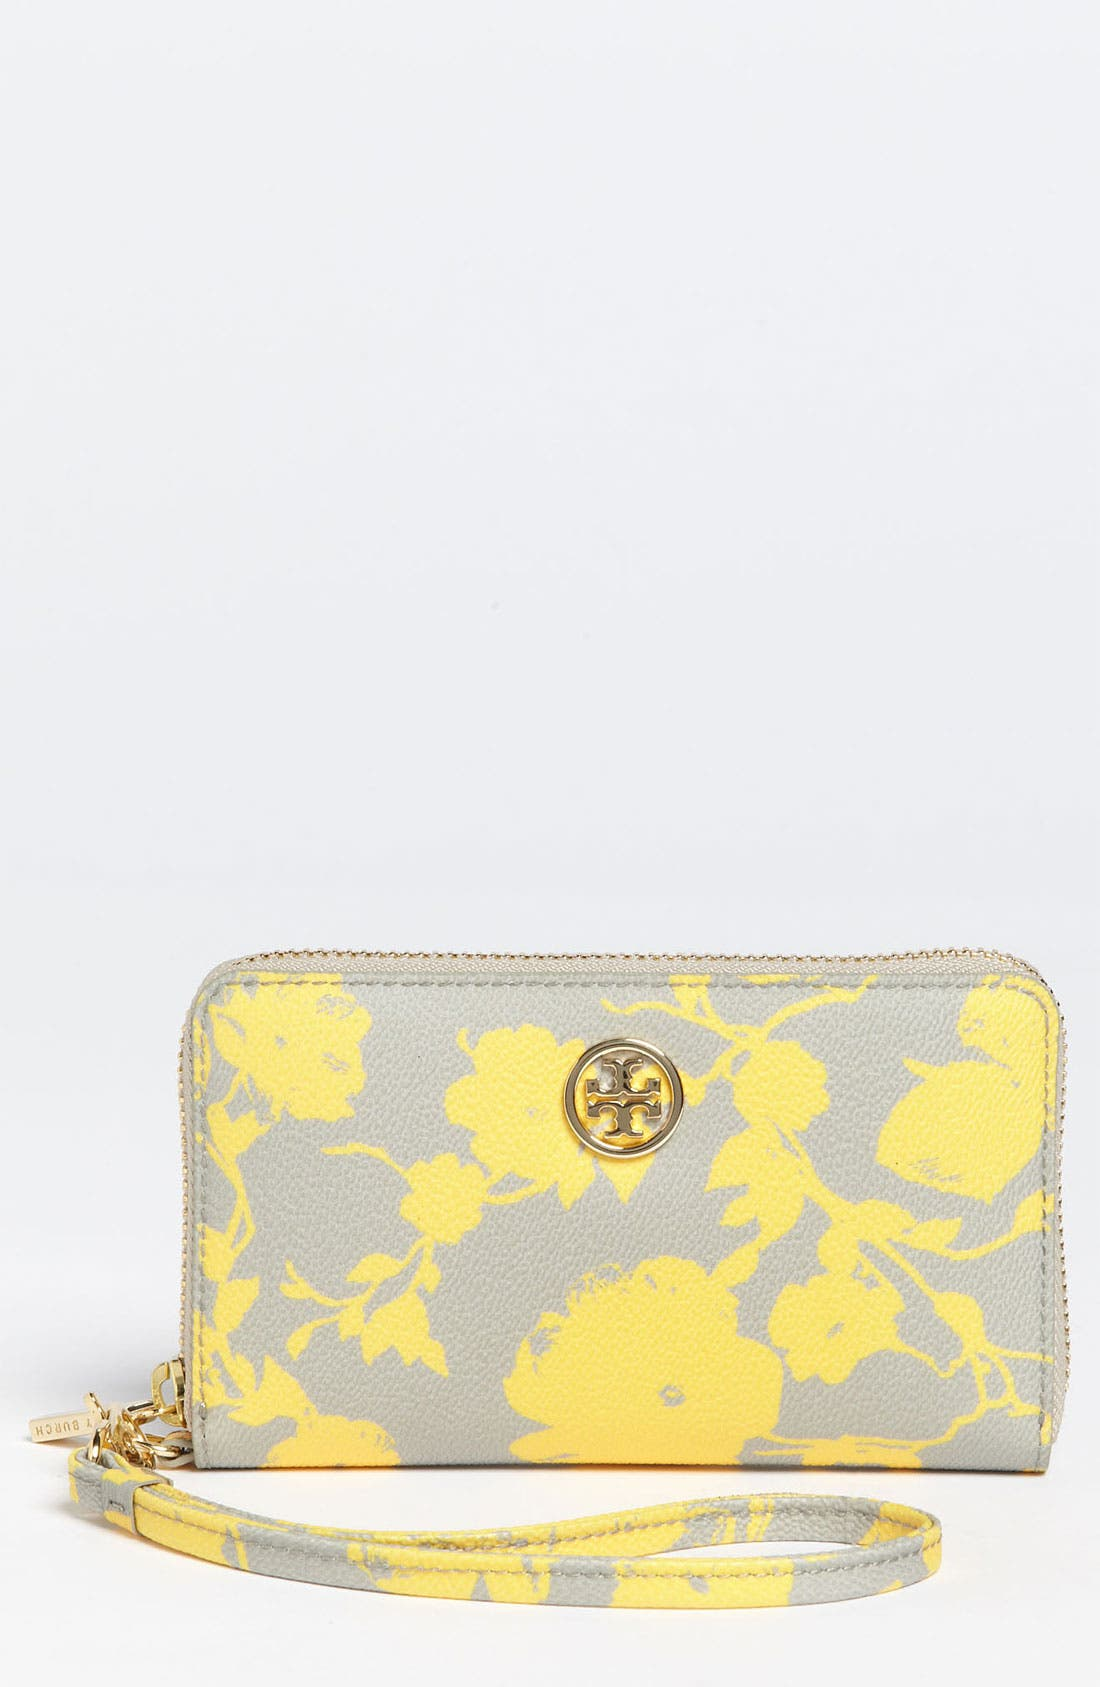 Alternate Image 1 Selected - Tory Burch 'Robinson' Phone Wallet